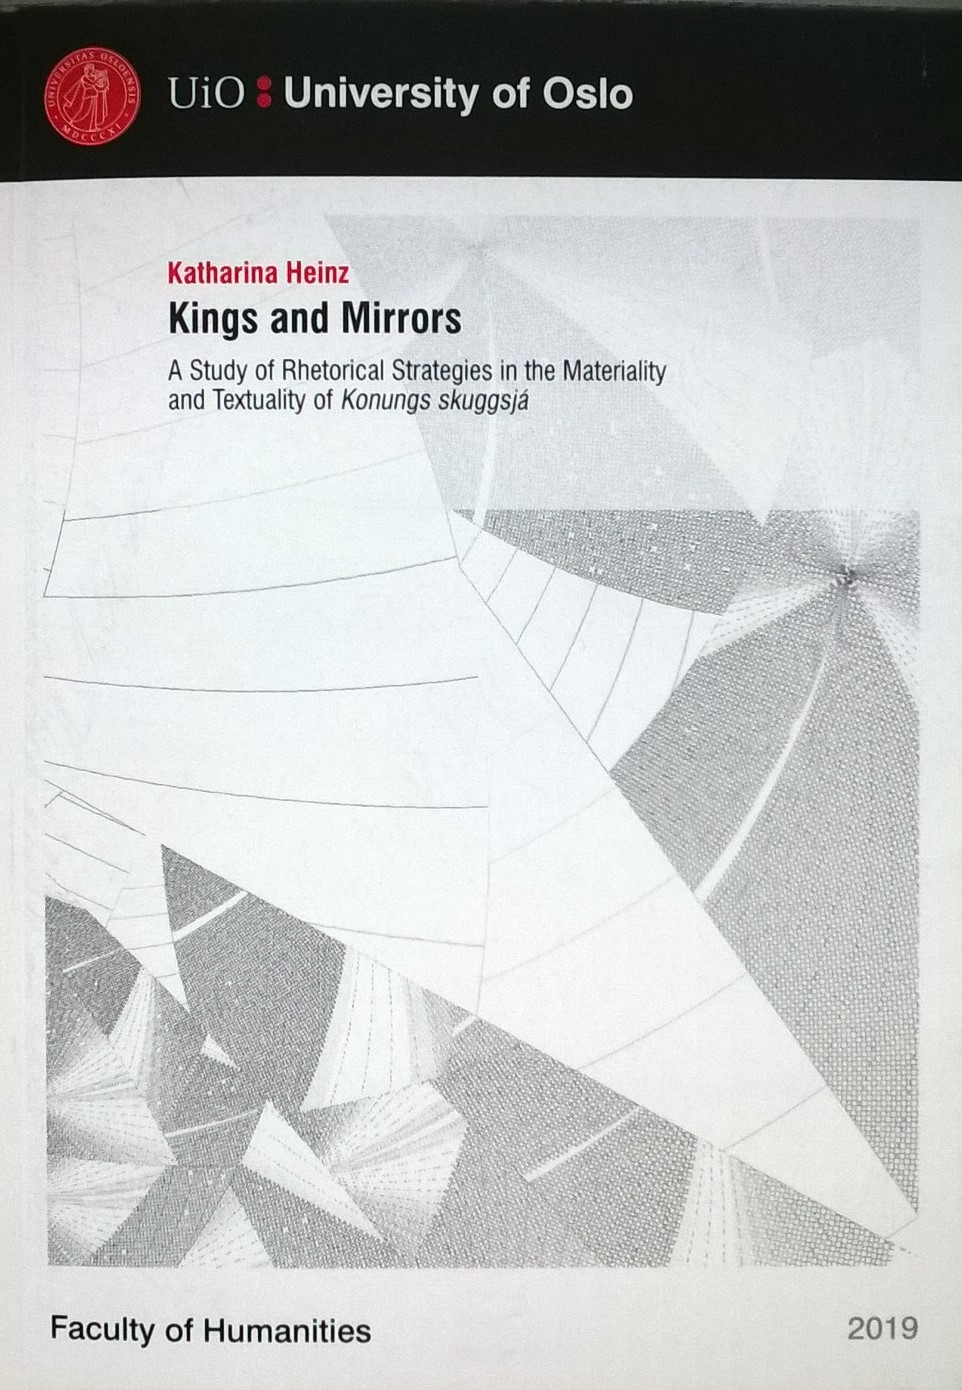 Heinz, Katharina Kings and Mirrors: A Study of Rhetorical Strategies in the Materiality and Textuality of Konungs skuggsjá